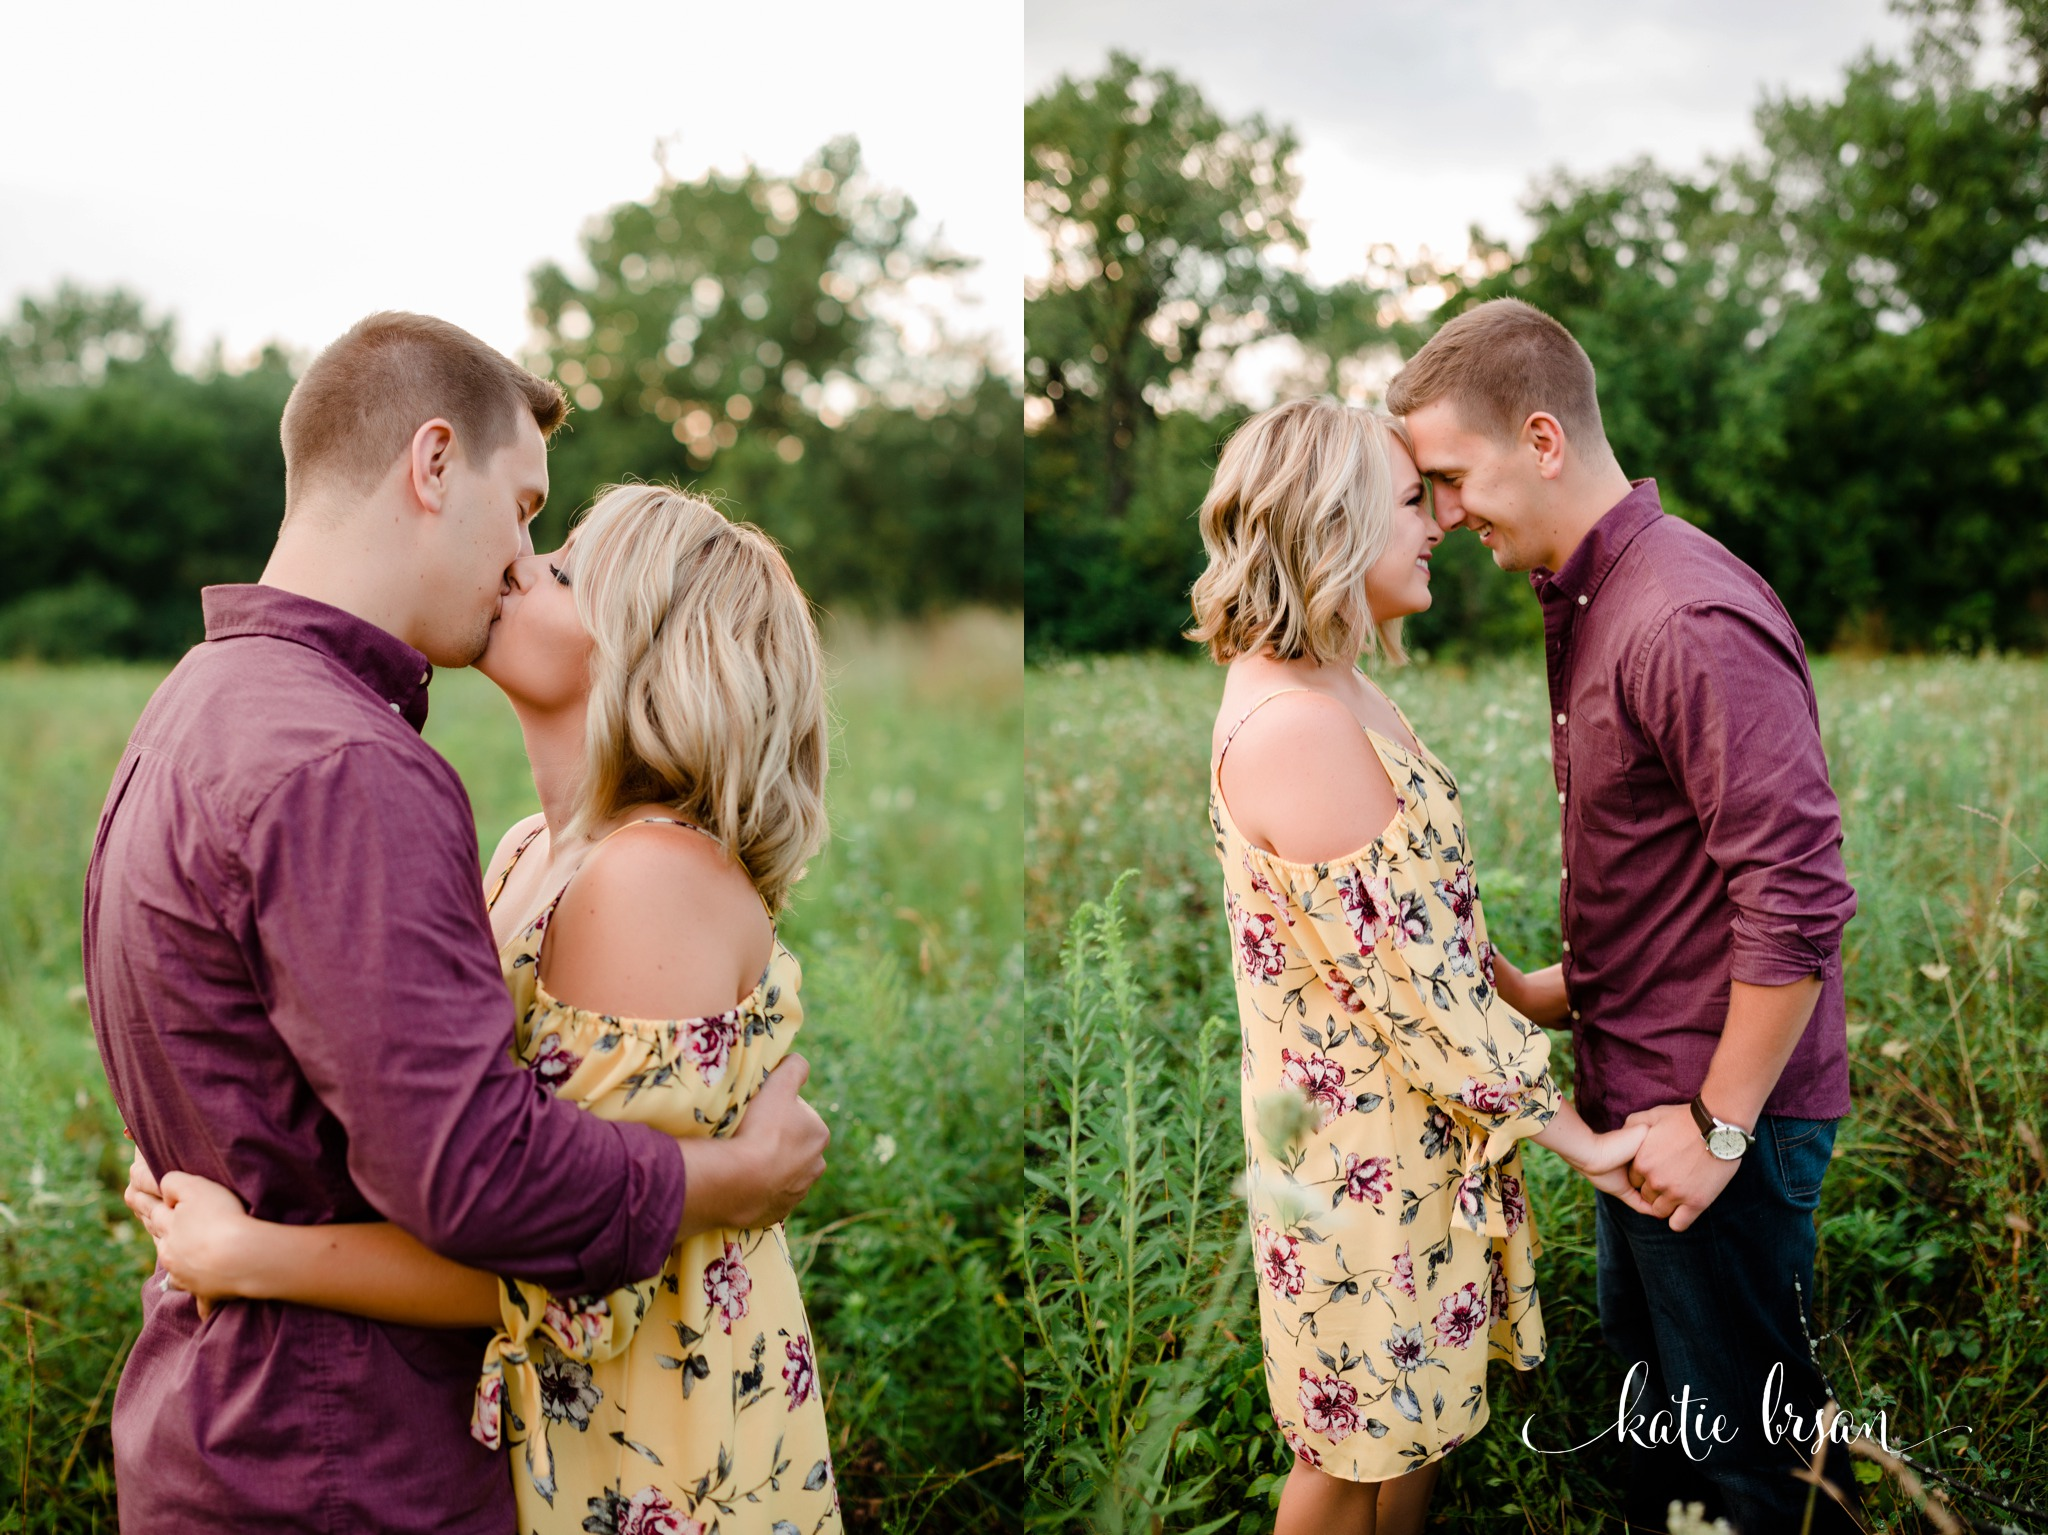 Mokena_Engagement_Session_CDandMe_Wedding_0005.jpg